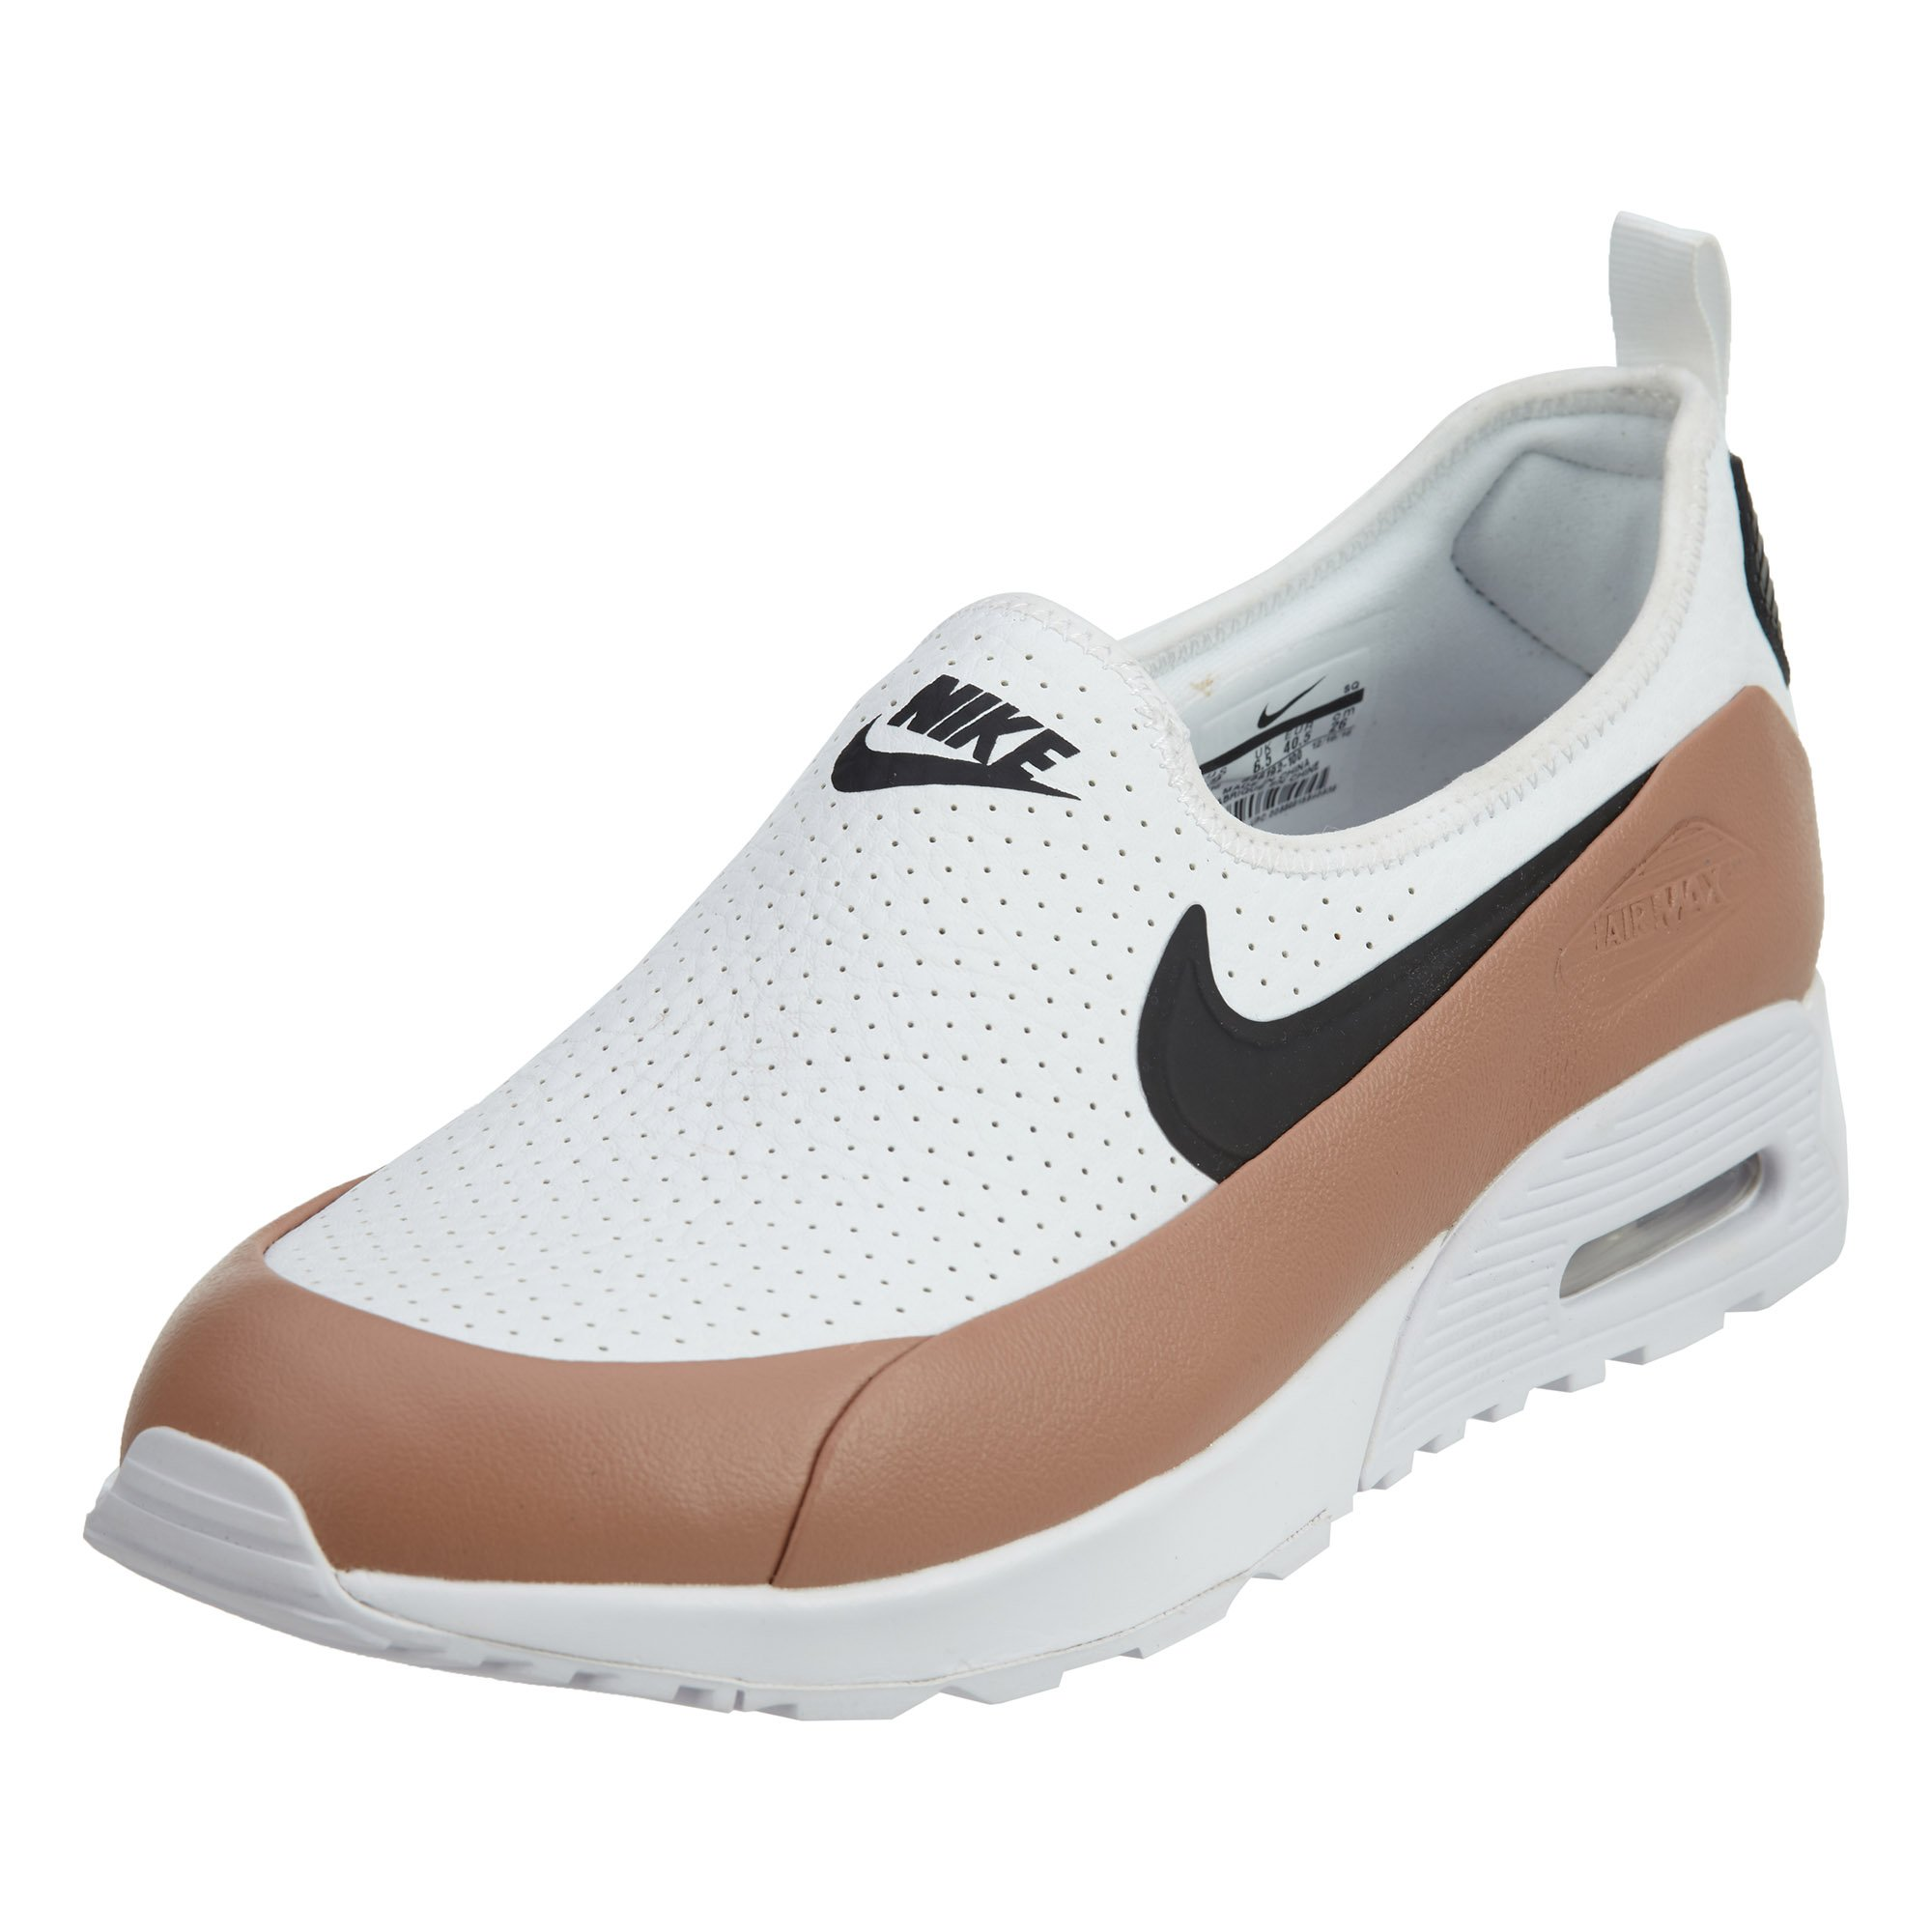 Nike Air Max 90 Ultra 2.0 Ease Mens Style: 896192-100 Size: 10.5 M US